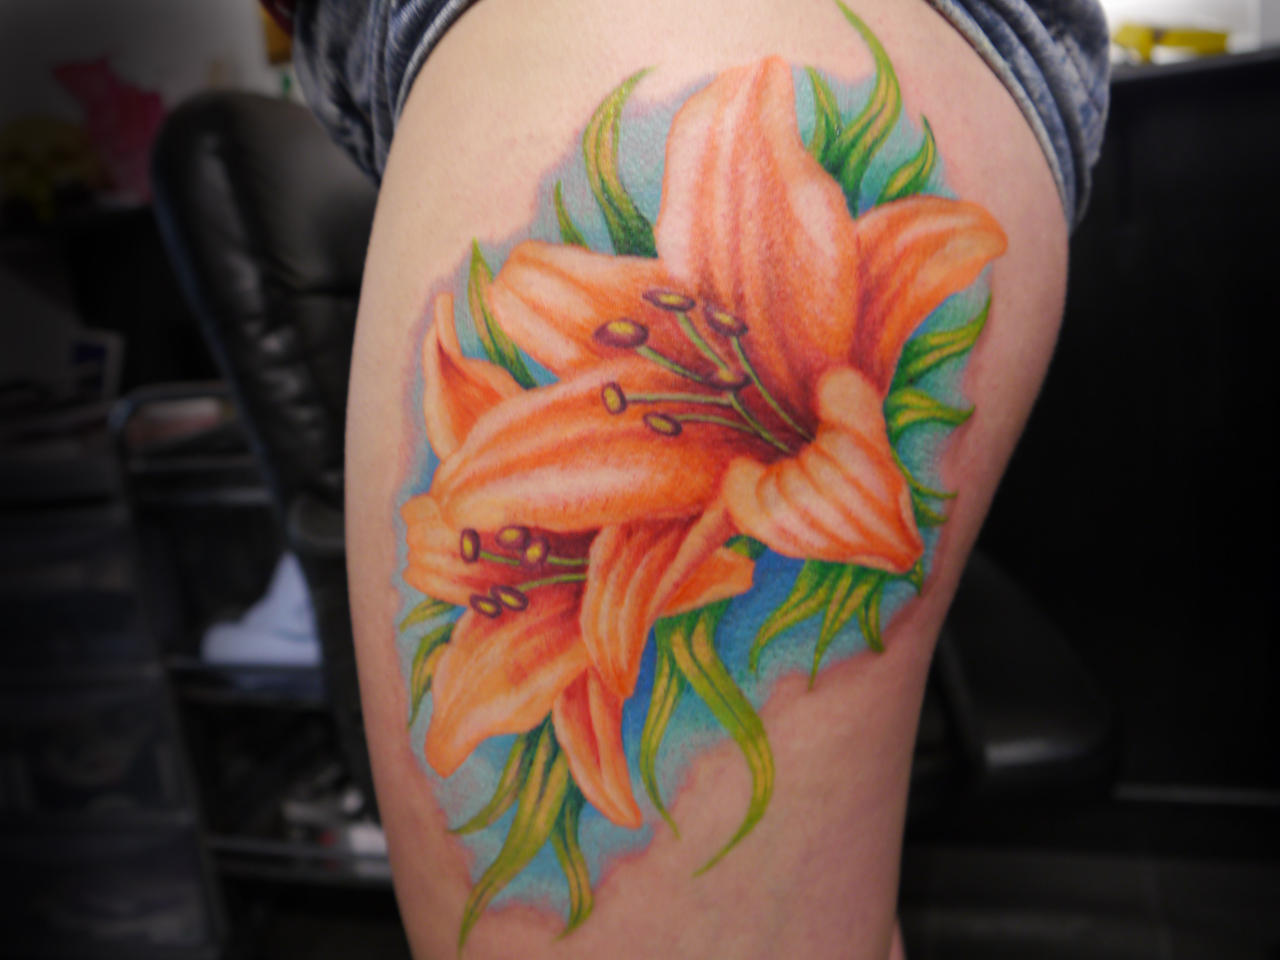 Czeshop images lily flower thigh tattoos source fc04iantart report lily flower thigh tattoos izmirmasajfo